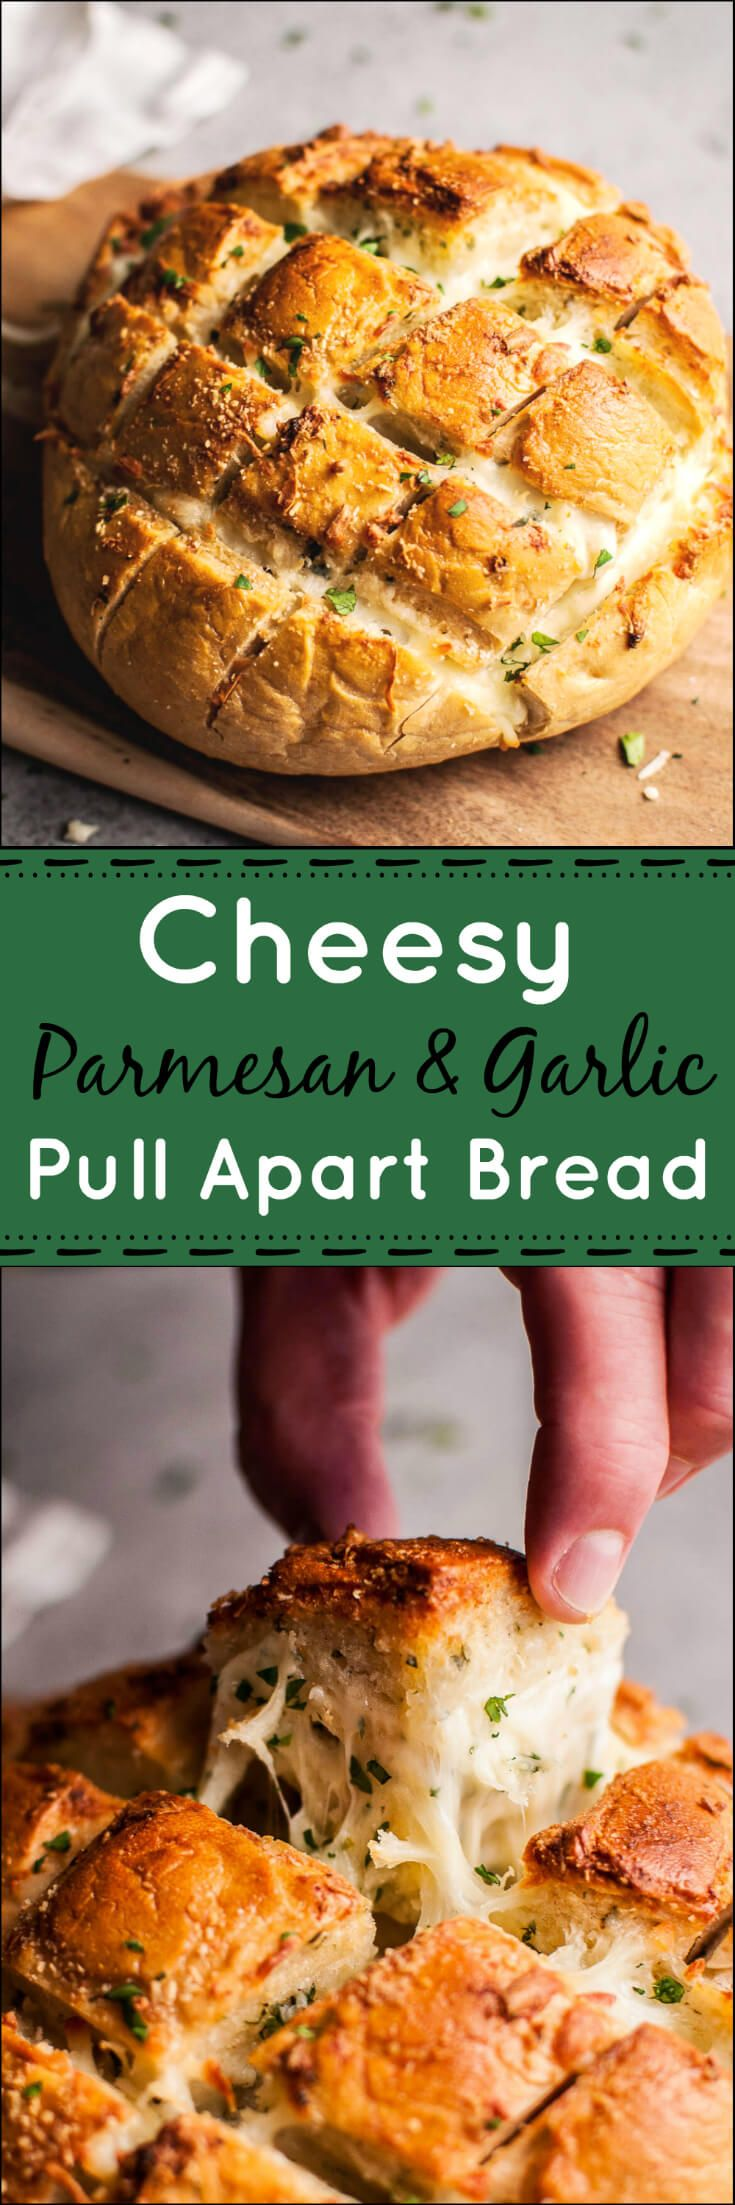 Parmesan and garlic butter cheesy pull apart bread is a deliciously comforting…